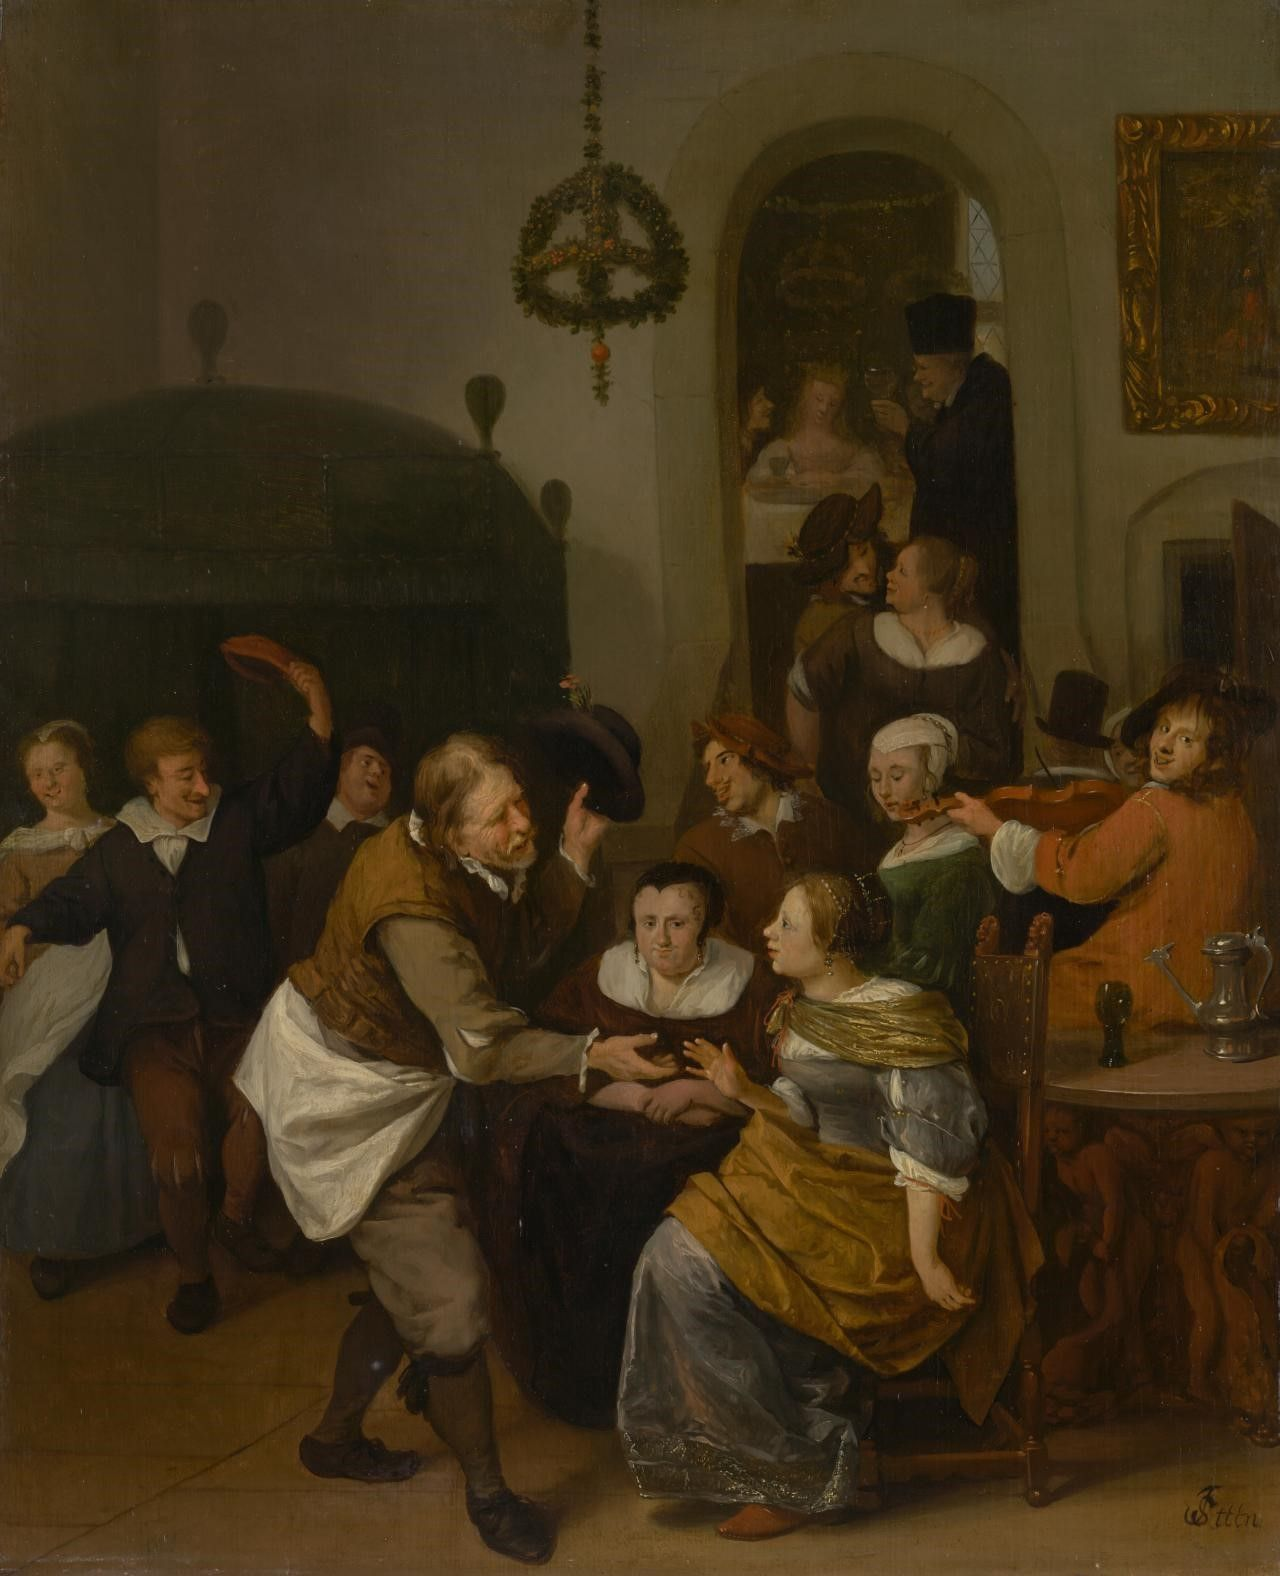 1667-1668. National Gallery of Victoria, Melbourne.